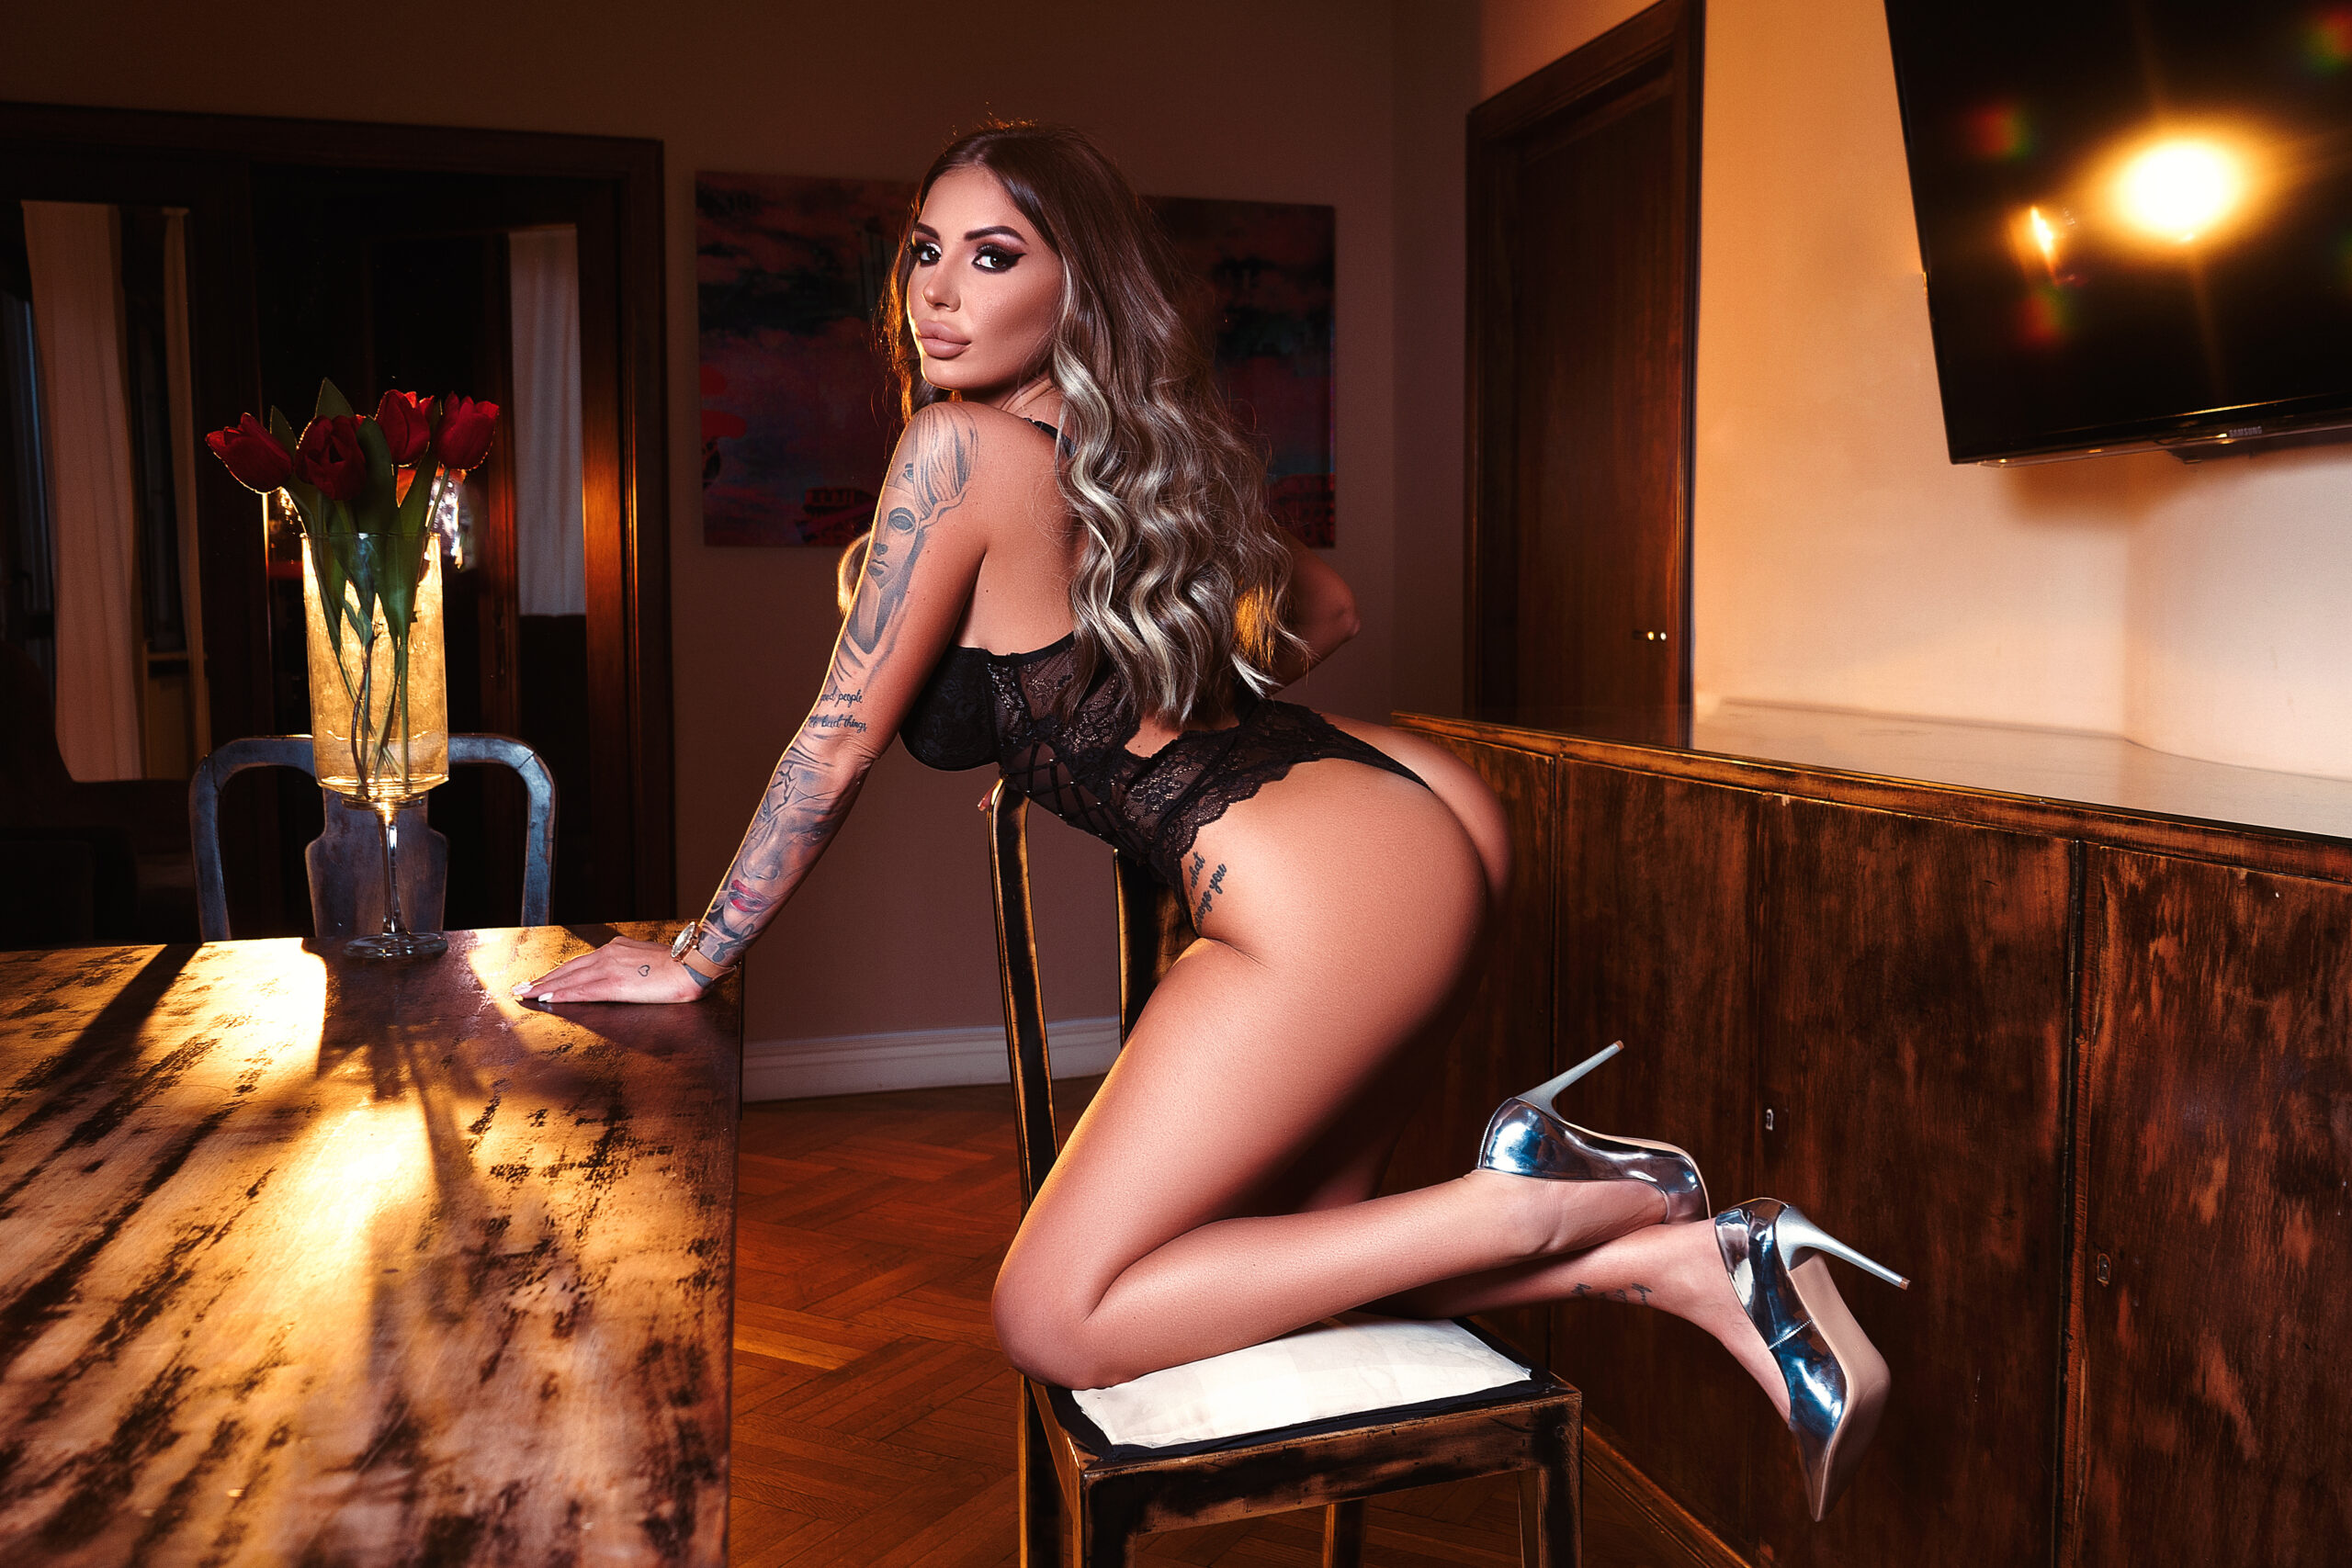 RAQUELLE SHARON – A QUEEN IN NEED OF WORSHIP